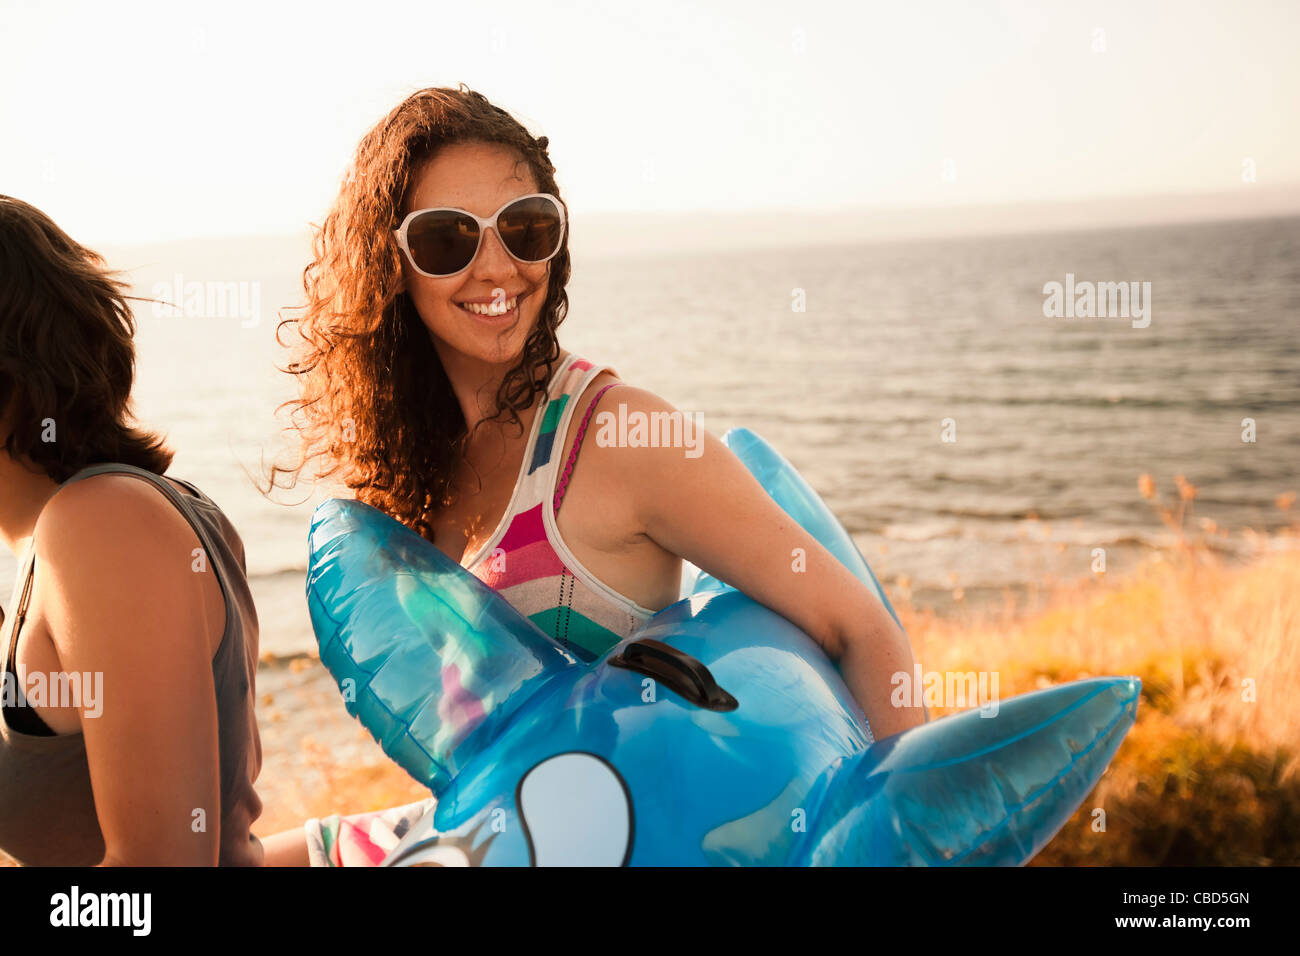 Woman carrying inflatable toy on beach Stock Photo